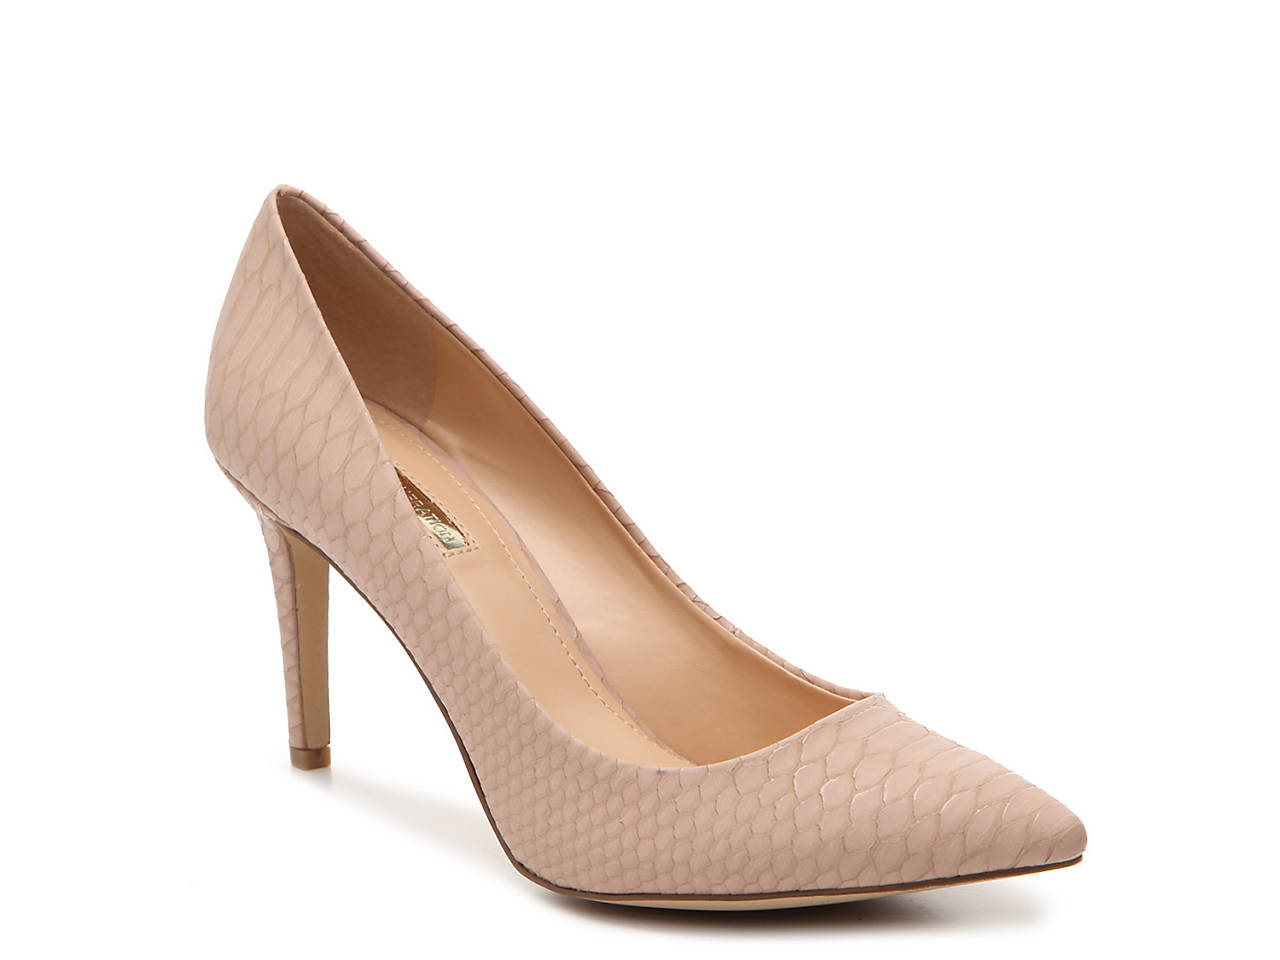 573419fa0f BCBGeneration Levonne Pump Women s Shoes